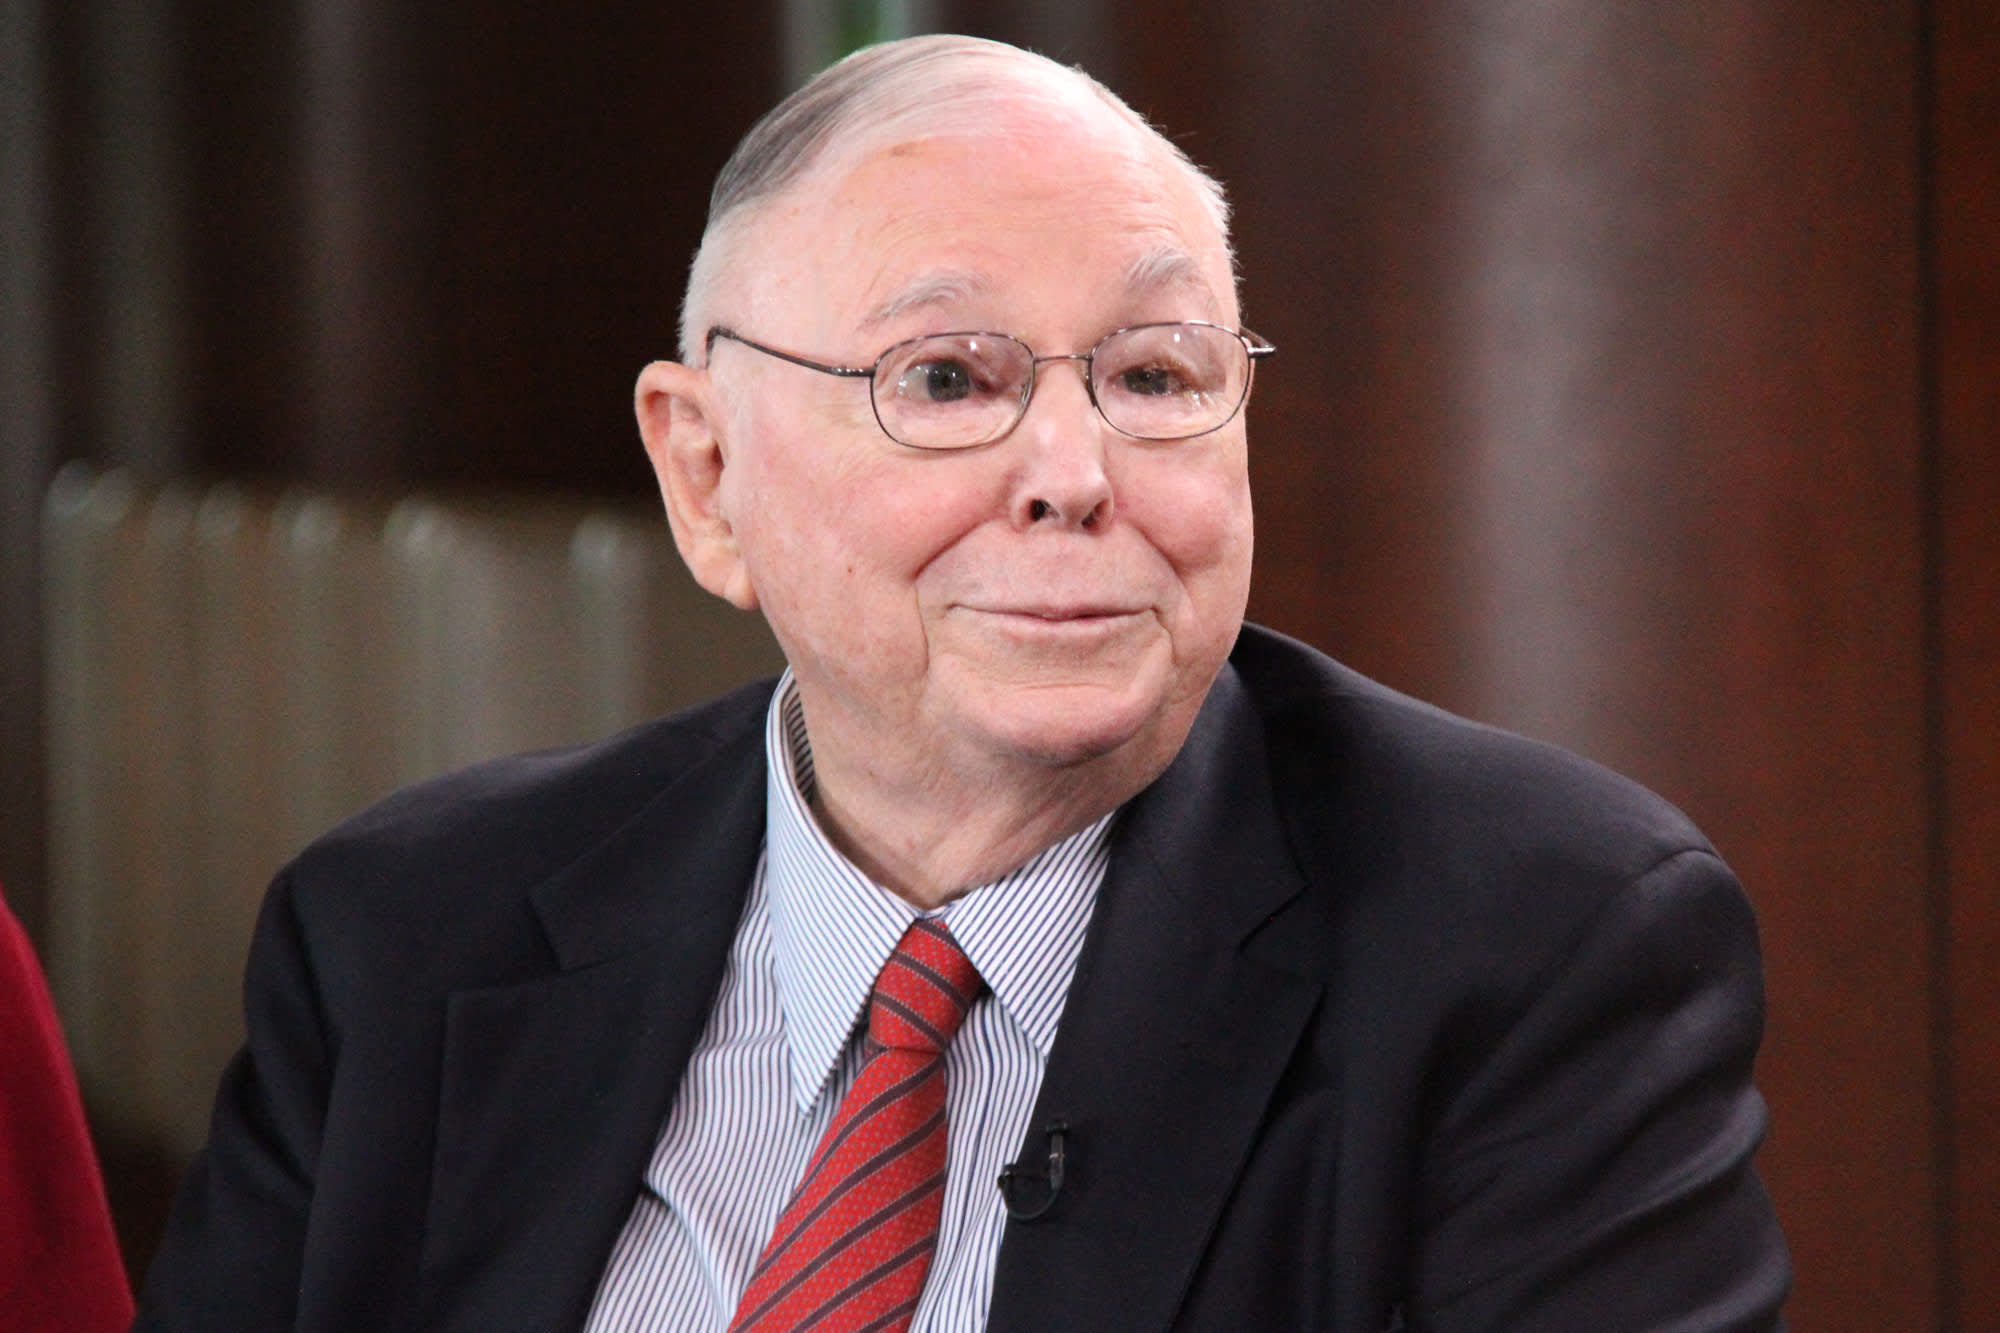 24 years ago, Charlie Munger gave brilliant life advice at Harvard—and it's important now more than ever